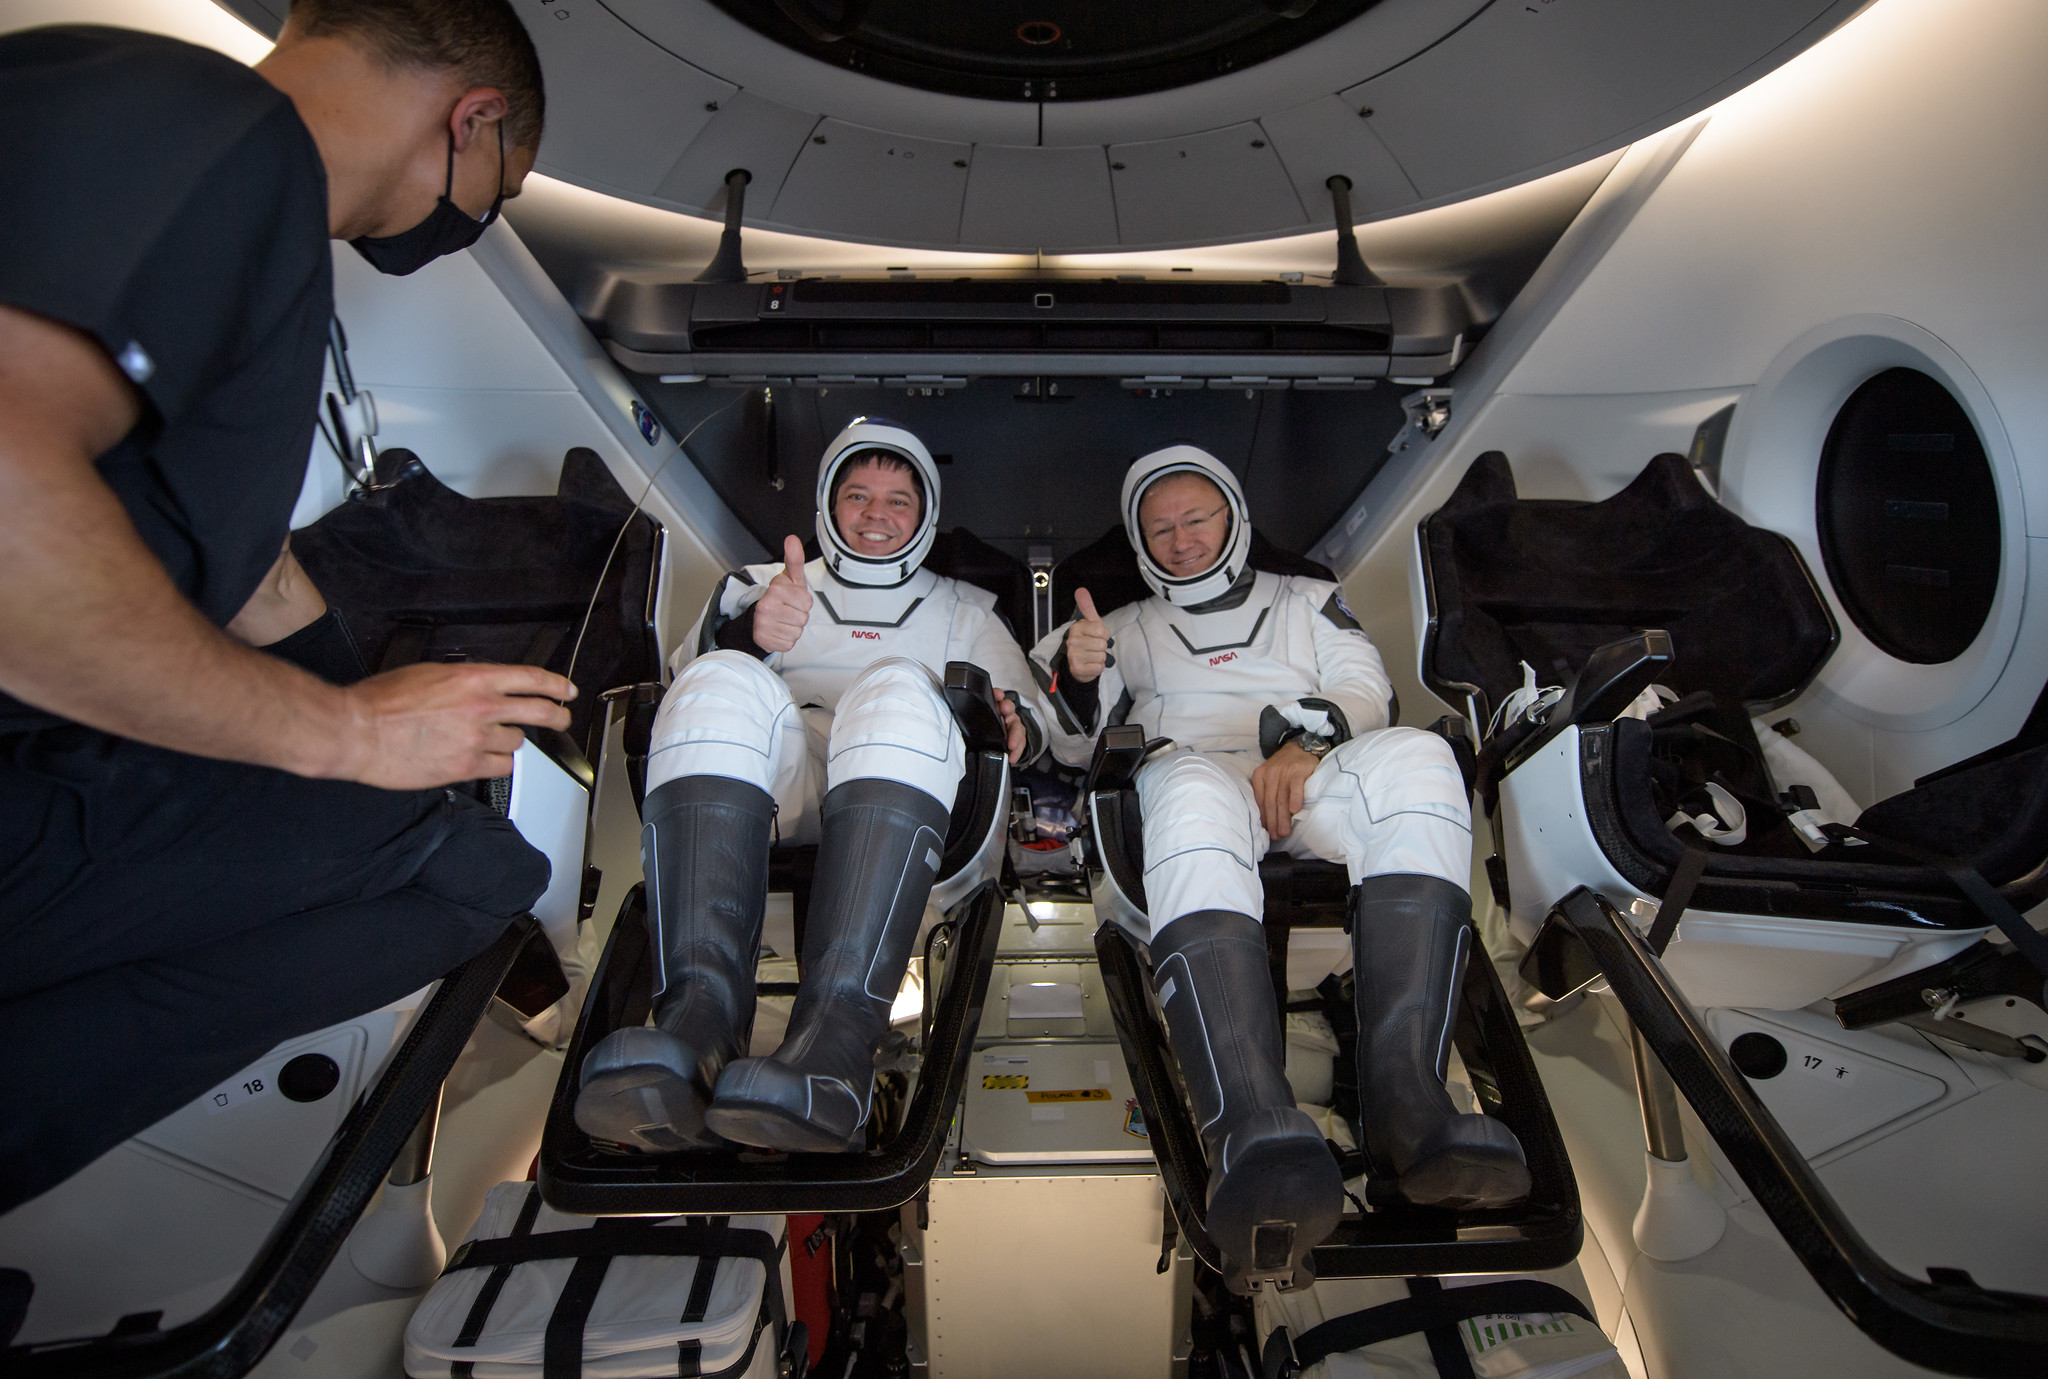 NASA Astronauts to Discuss Historic SpaceX Crew Dragon Test Flight